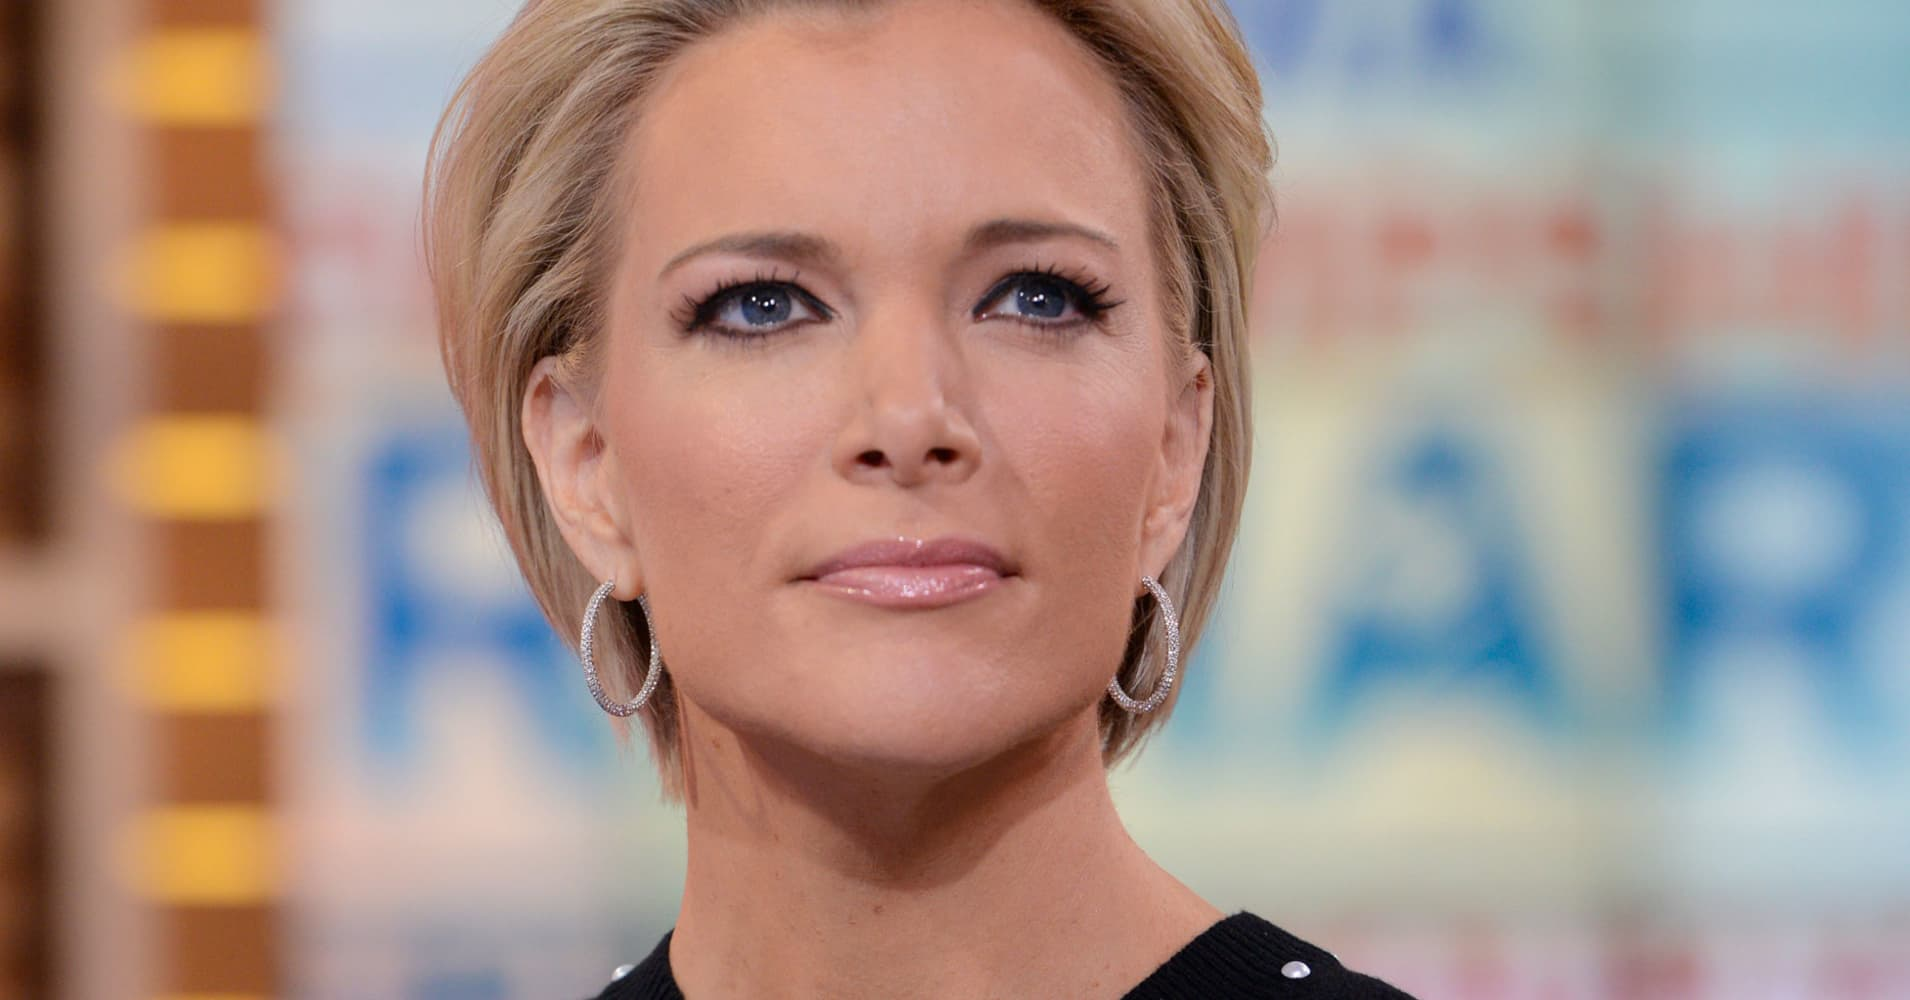 CNN trying to lure Fox News' Megyn Kelly, says Drudgereport